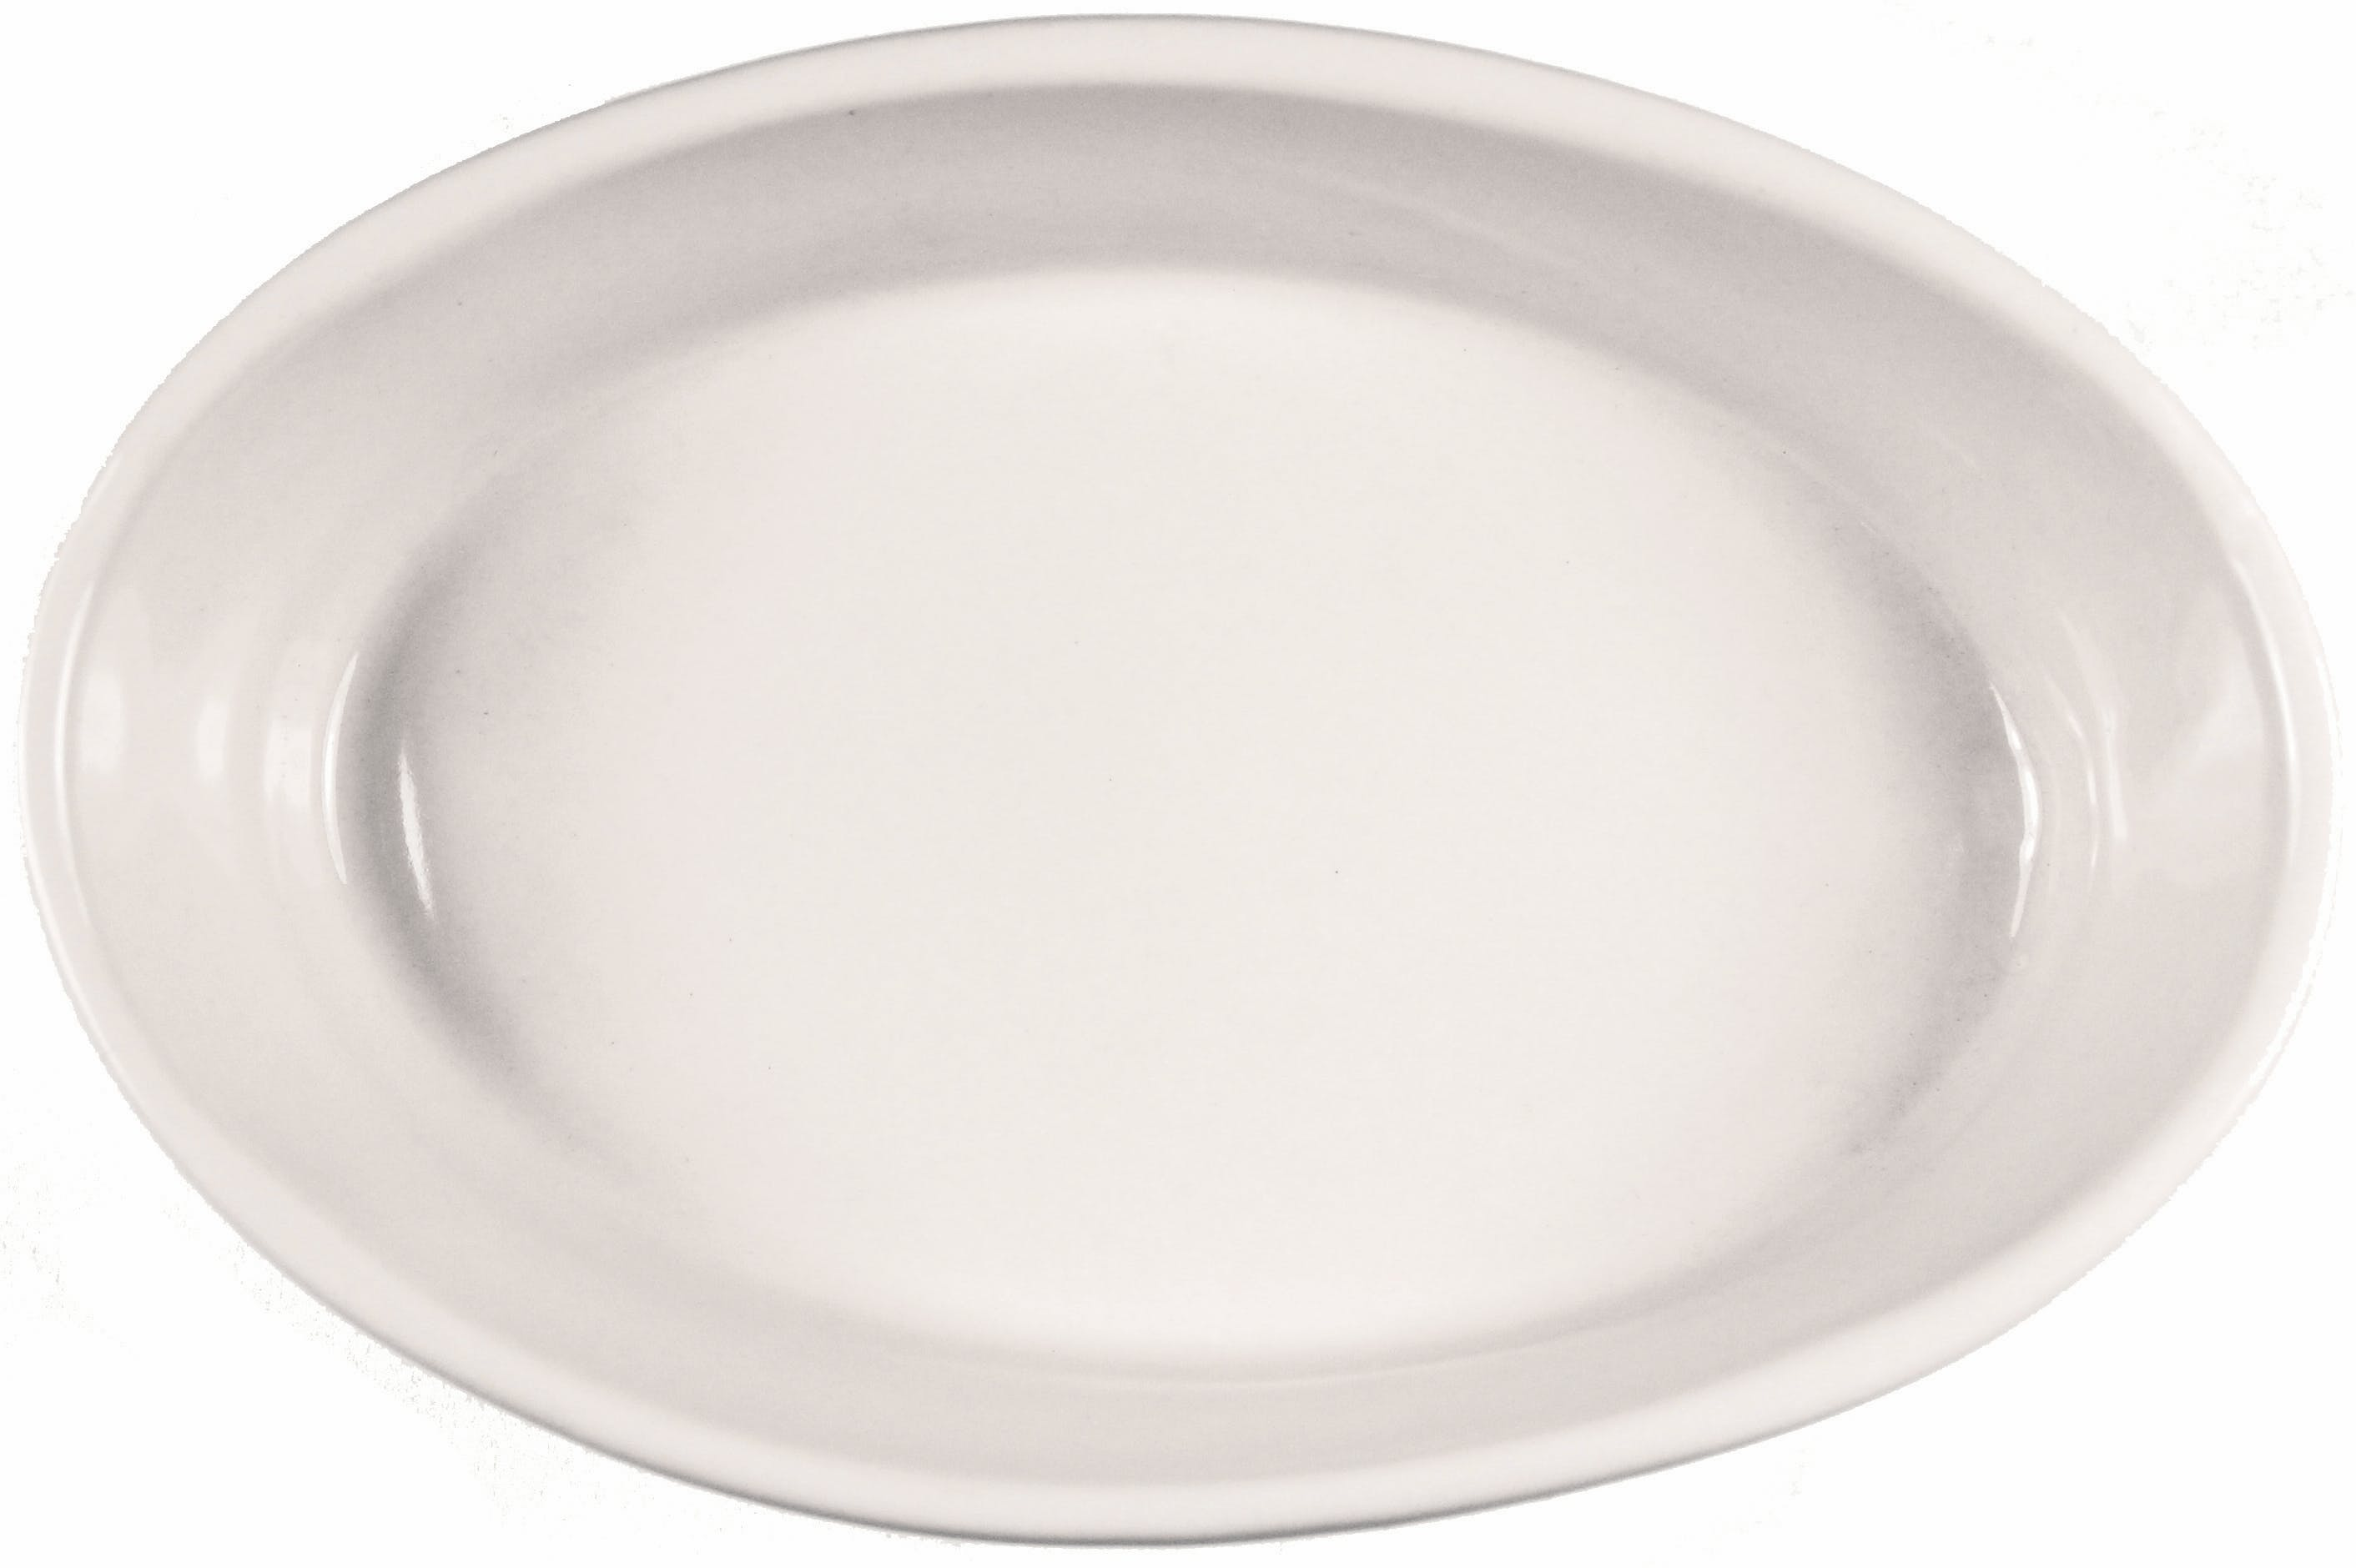 10.5 oz. American White Oven Baker Plate sold by Prestige Glassware